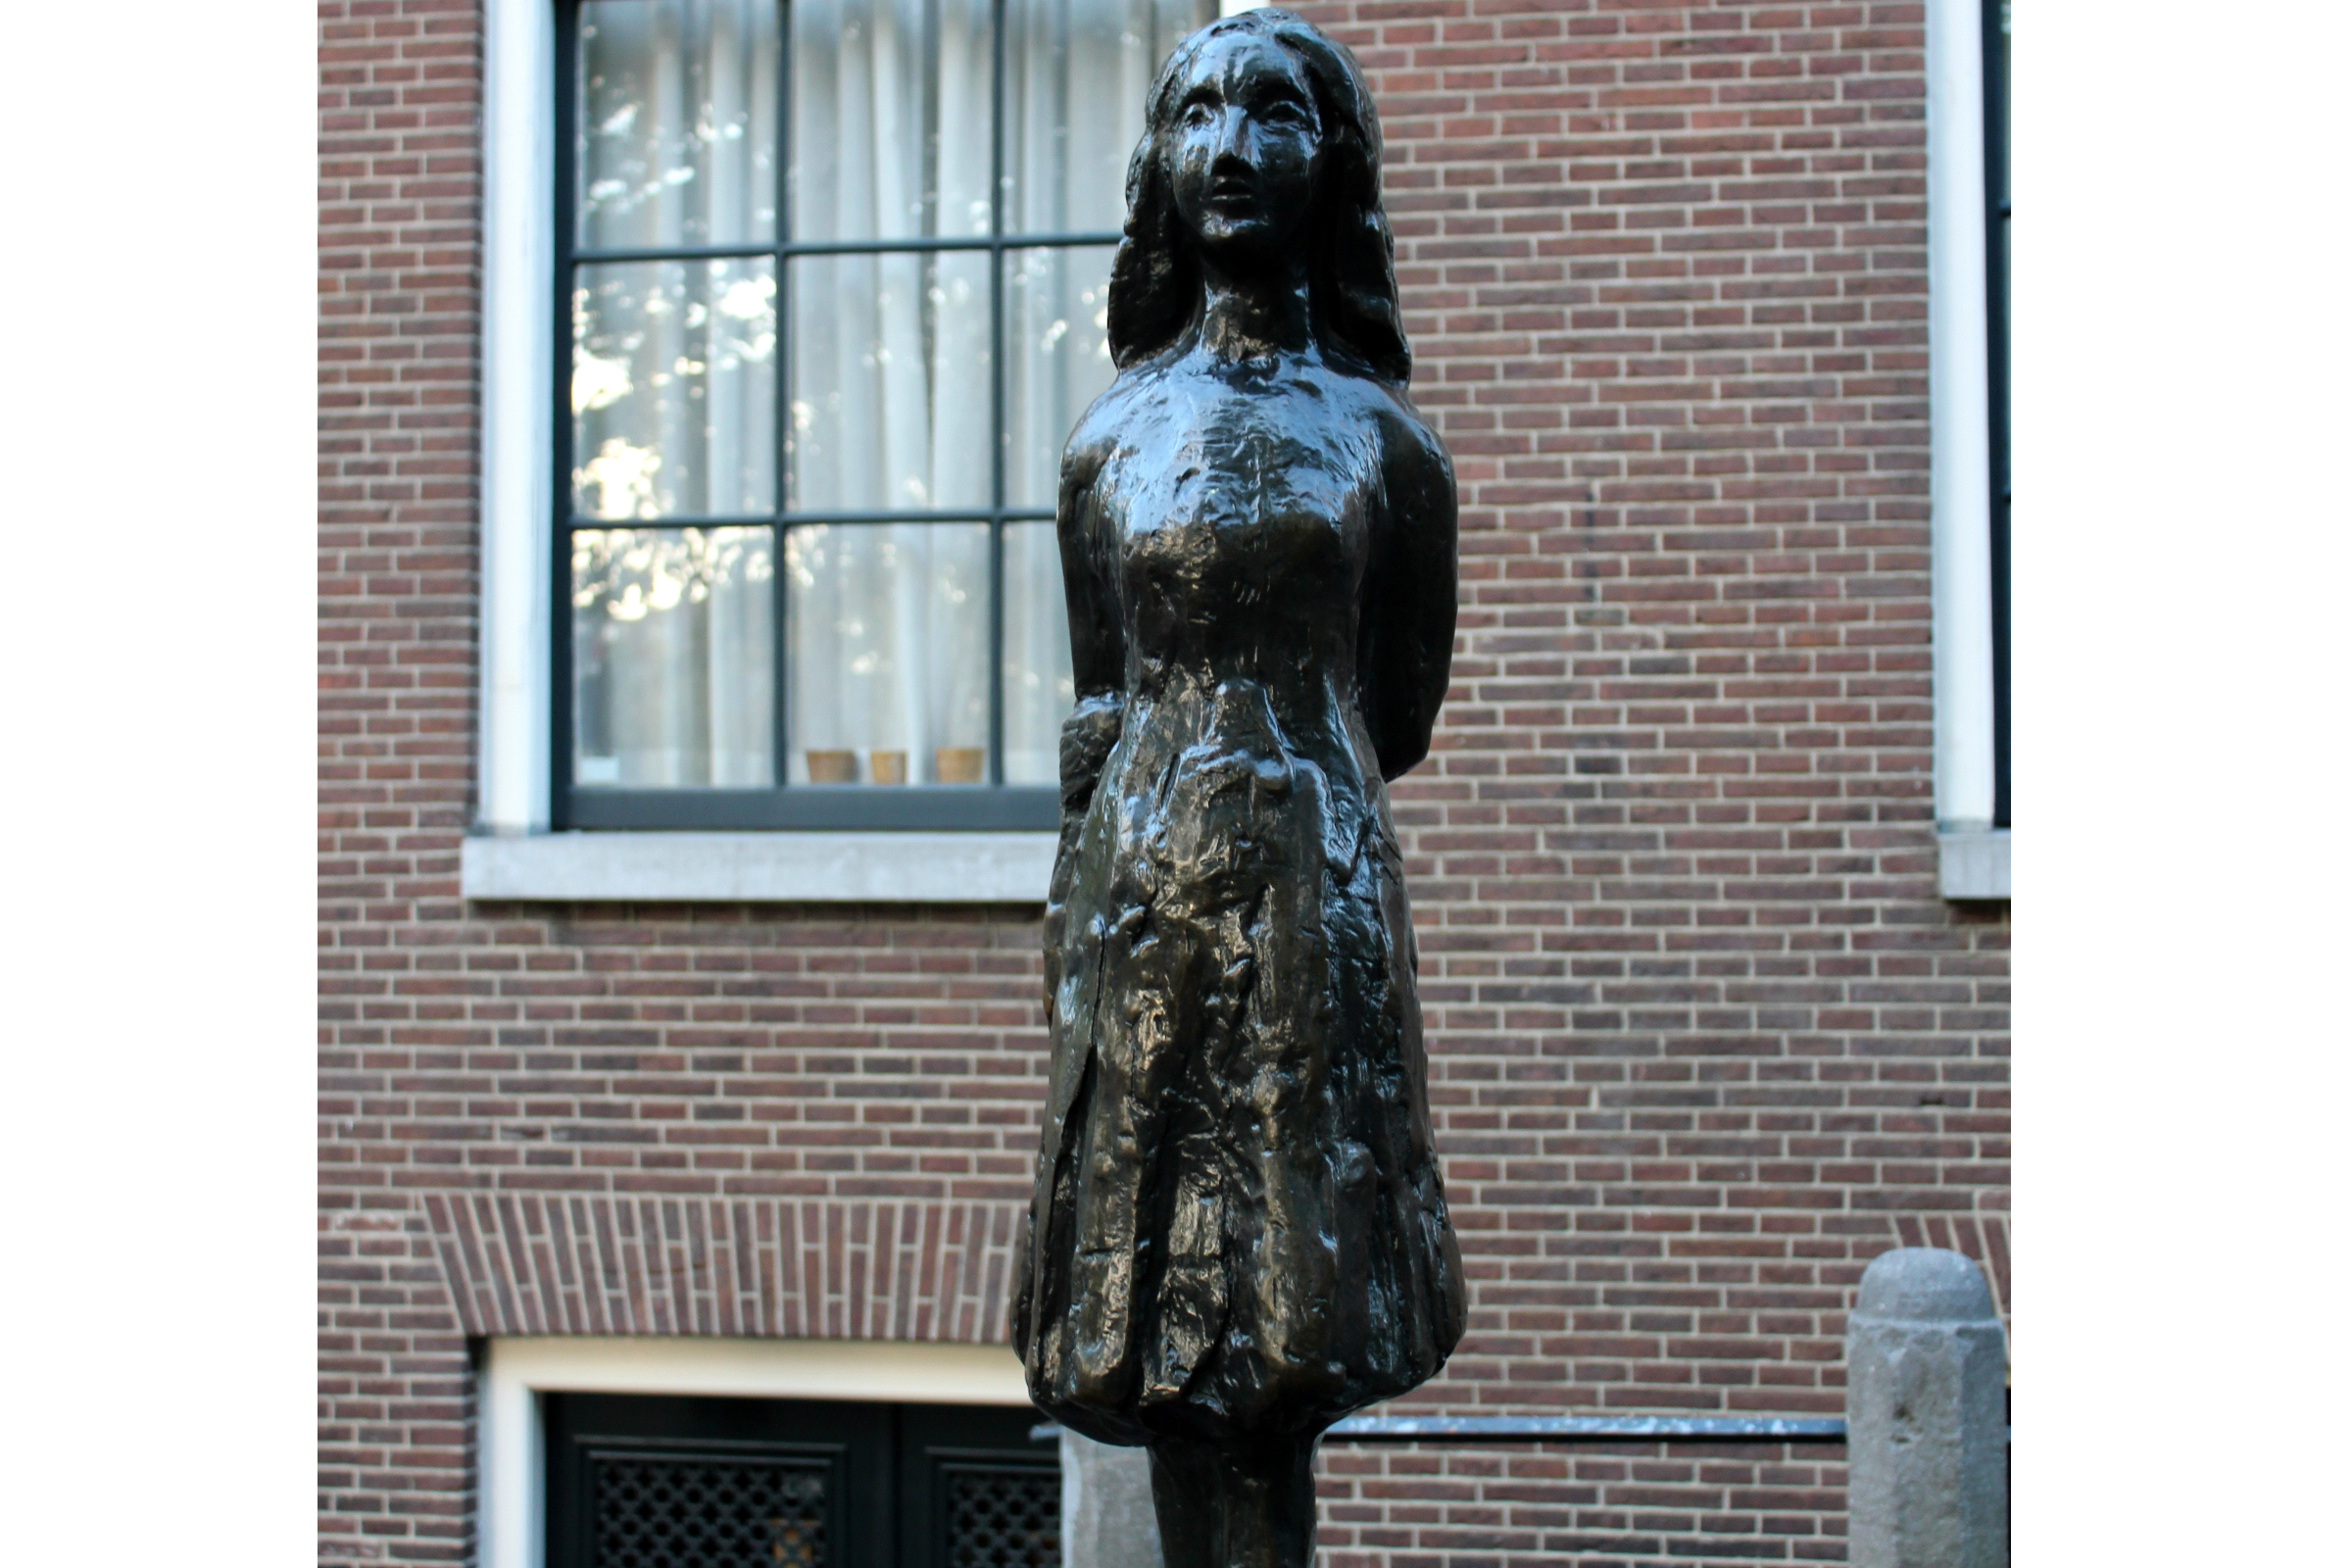 Anne Frank House in Amsterdam, Netherlands